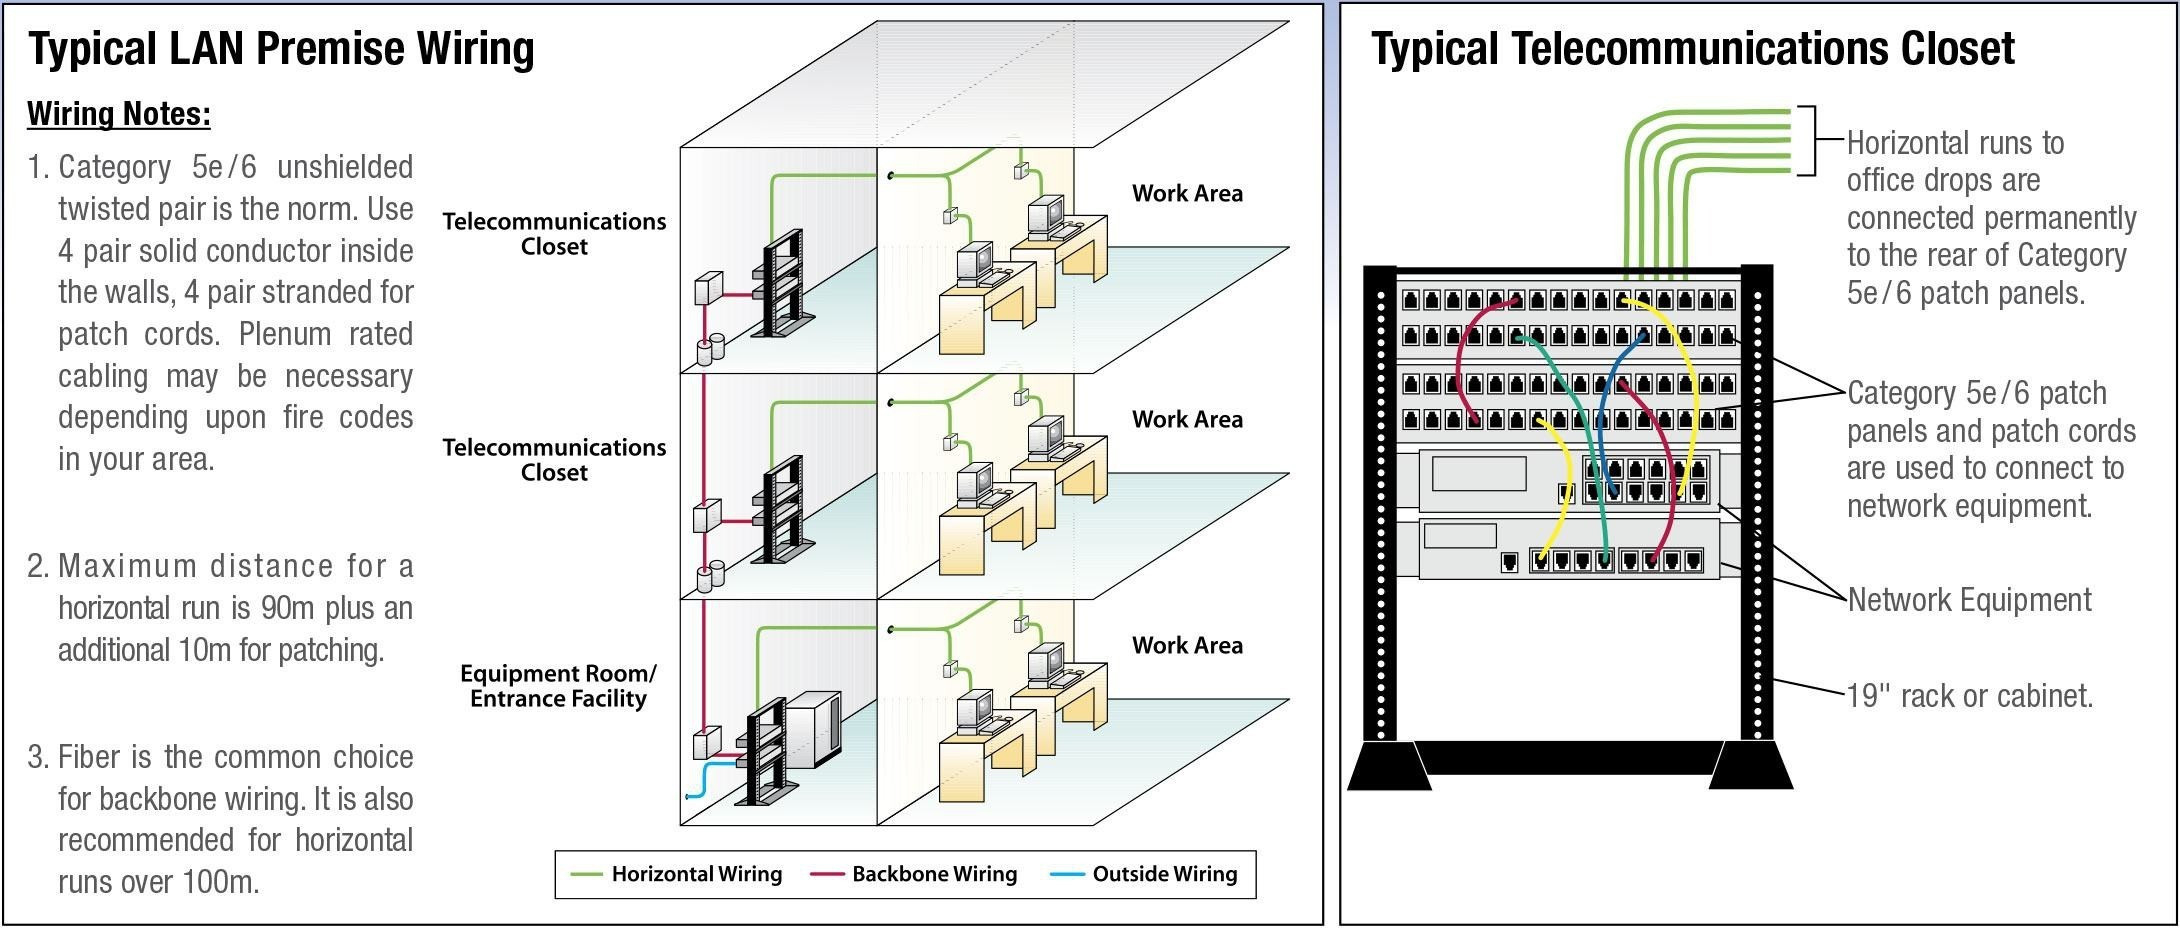 Cat 6 Wiring Diagram for Wall Plates Collection Cat Wiring Diagram Australia on 15-pin vga cable diagram, cat 3 wiring, cat 6 connection diagram, cat 5 vs cat 6, cat 6 tools, cat c15 wiring-diagram, cat 6 pin diagram, cat 6 jack diagram, cat 5 wiring jack schematic, cat 6 pinout, cat 6 cabling diagram, installation diagram, cat 6 plug diagram, cat 5 wiring configuration, cat cable diagram, cat5 cable diagram, cat 6 connector, cat 5 wiring home, cat 6 punch down diagram, cat 5 diagram,